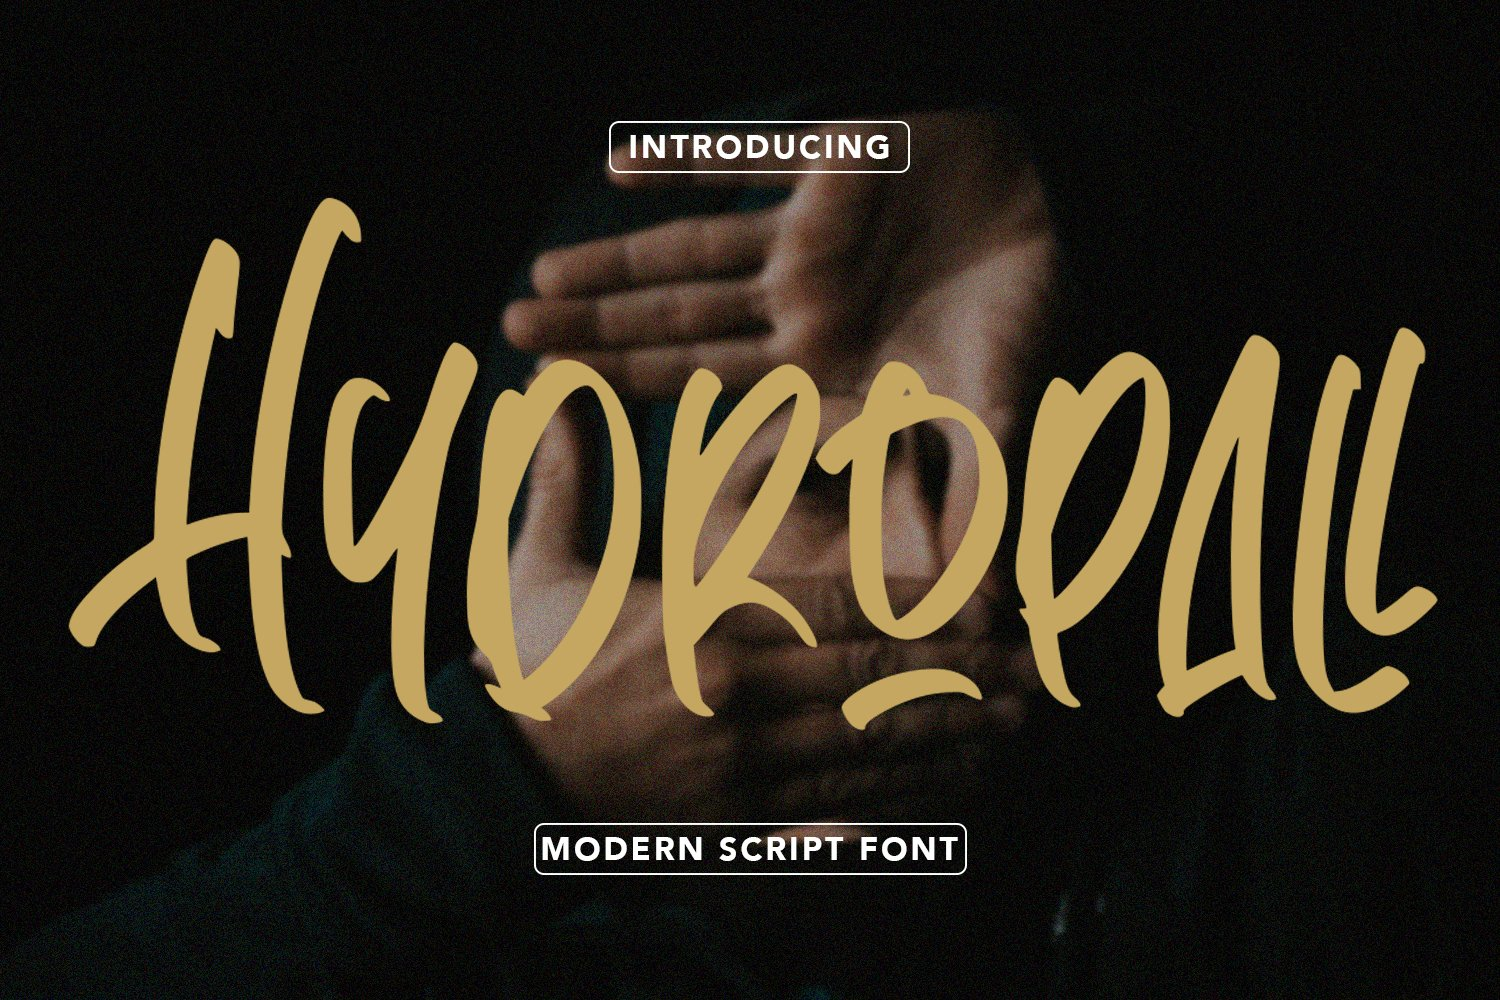 Hydropall - Modern Script Font example image 1